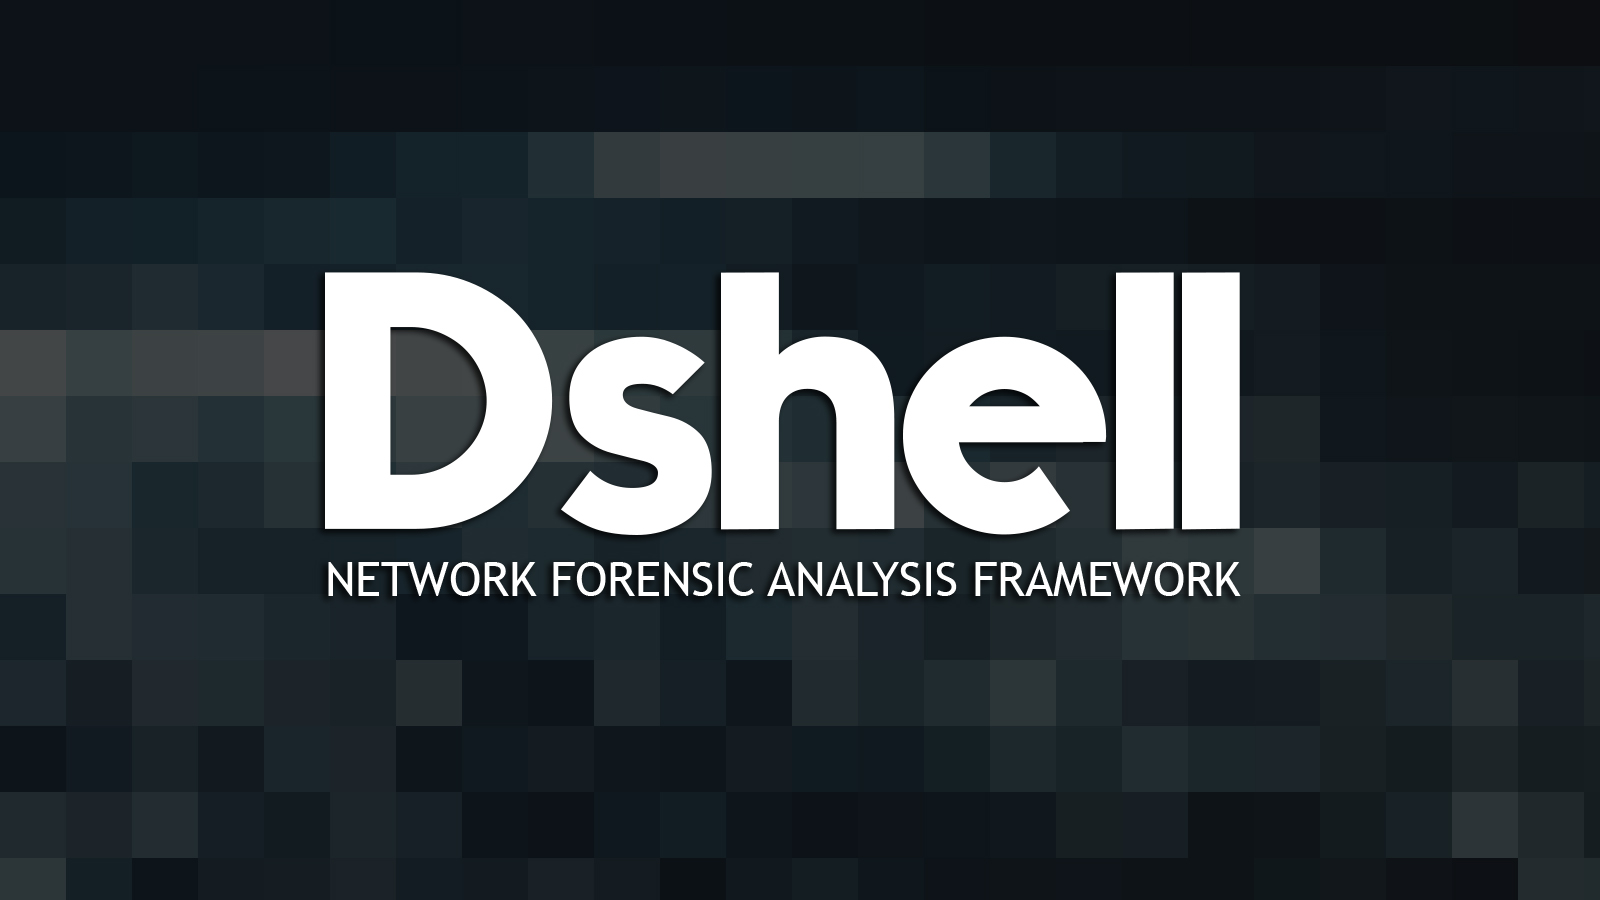 Dshell - Network Forensic Analysis Framework